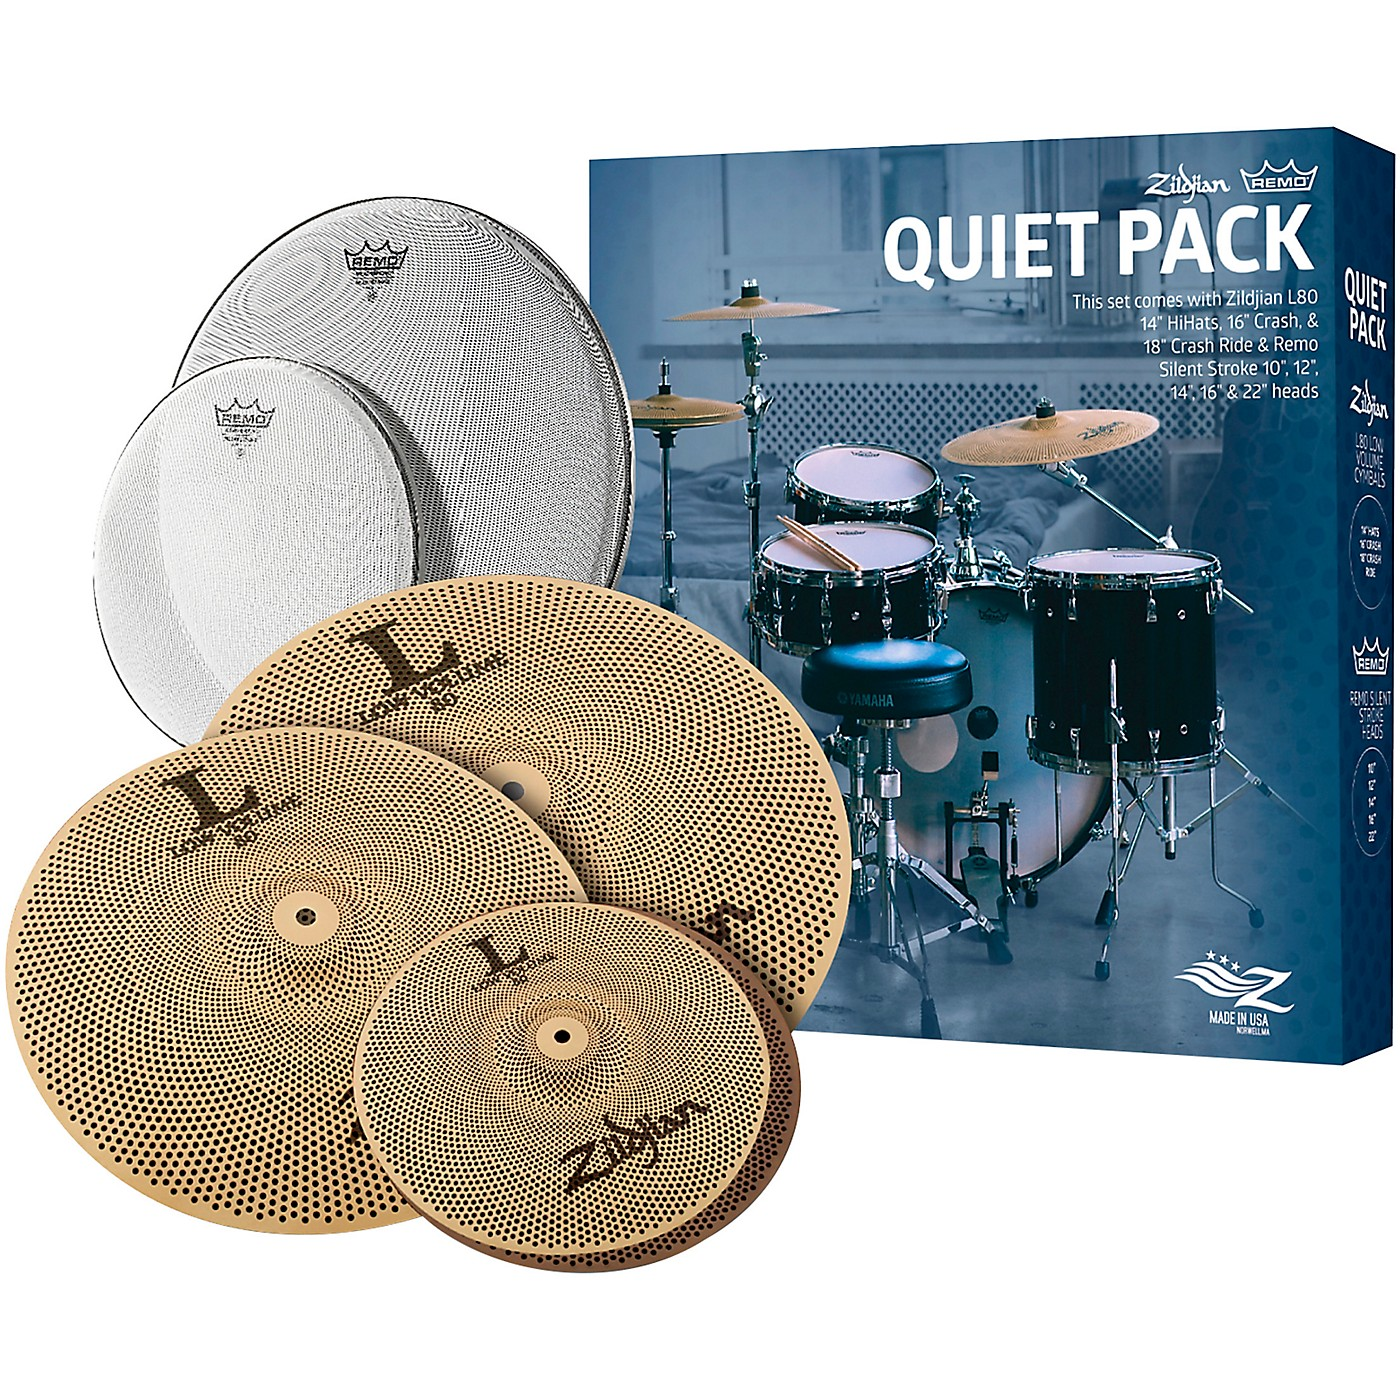 Zildjian LV468RH Low Volume Cymbal Pack with Remo Silent Stroke Heads thumbnail